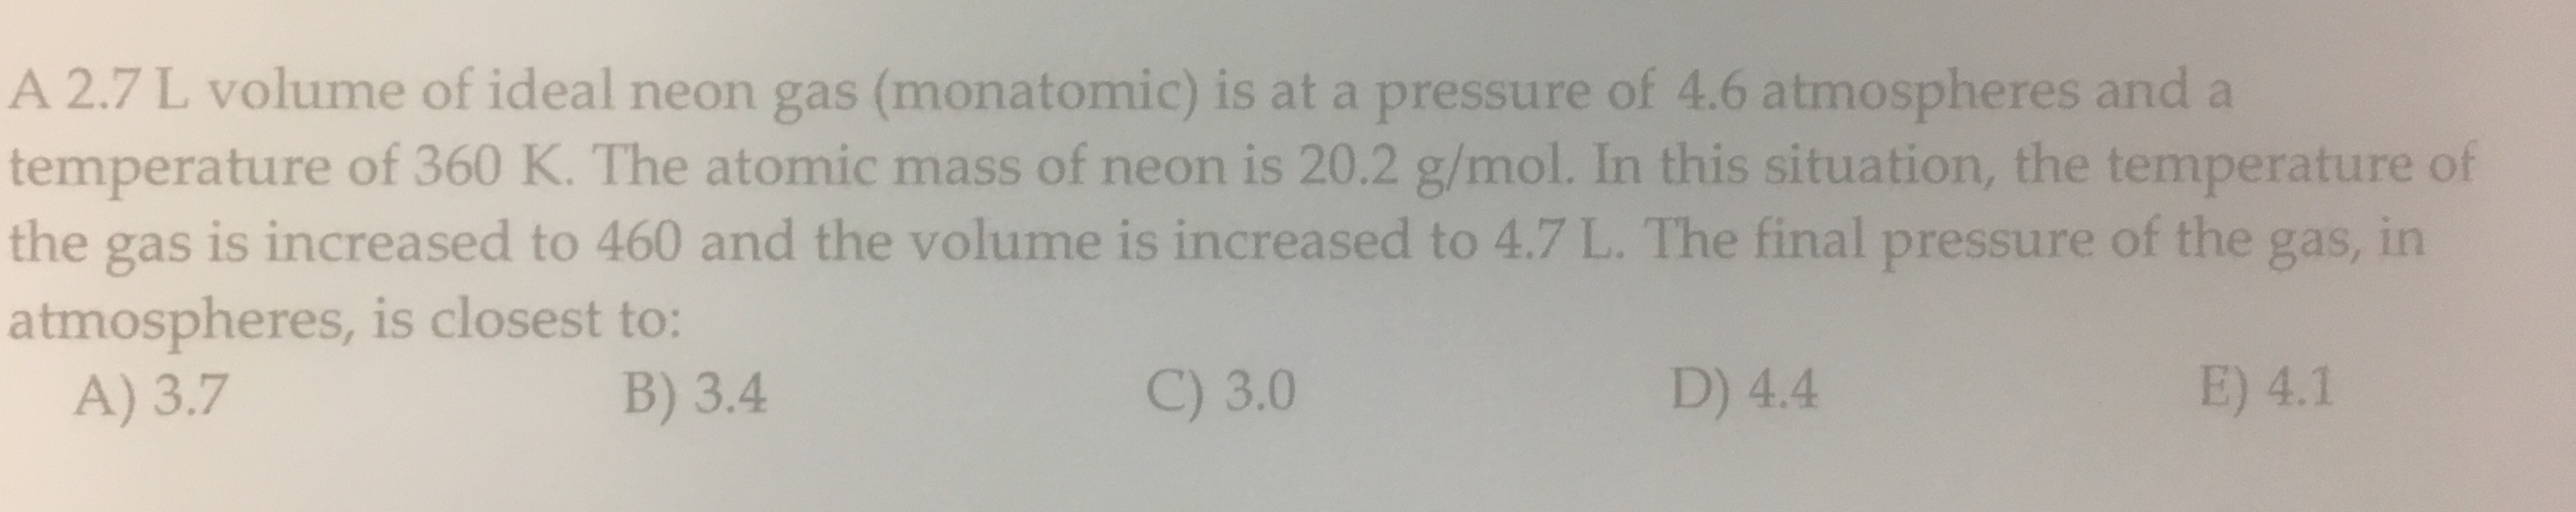 A 2.7 L volume of ideal neon gas (monatomic) is at a pressure of 4.6 atmospheres and a temperature of 360 K. The atomic mass of neon is 20.2 g/mol. In this situation, the temperature of the gas is increased to 460 and the volume is increased to 4.7 L. The final pressure of the gas, in atmospheres, is closest to: A) 3.7 B) 3.4 C) 3.0 D) 4.4 E) 4.1